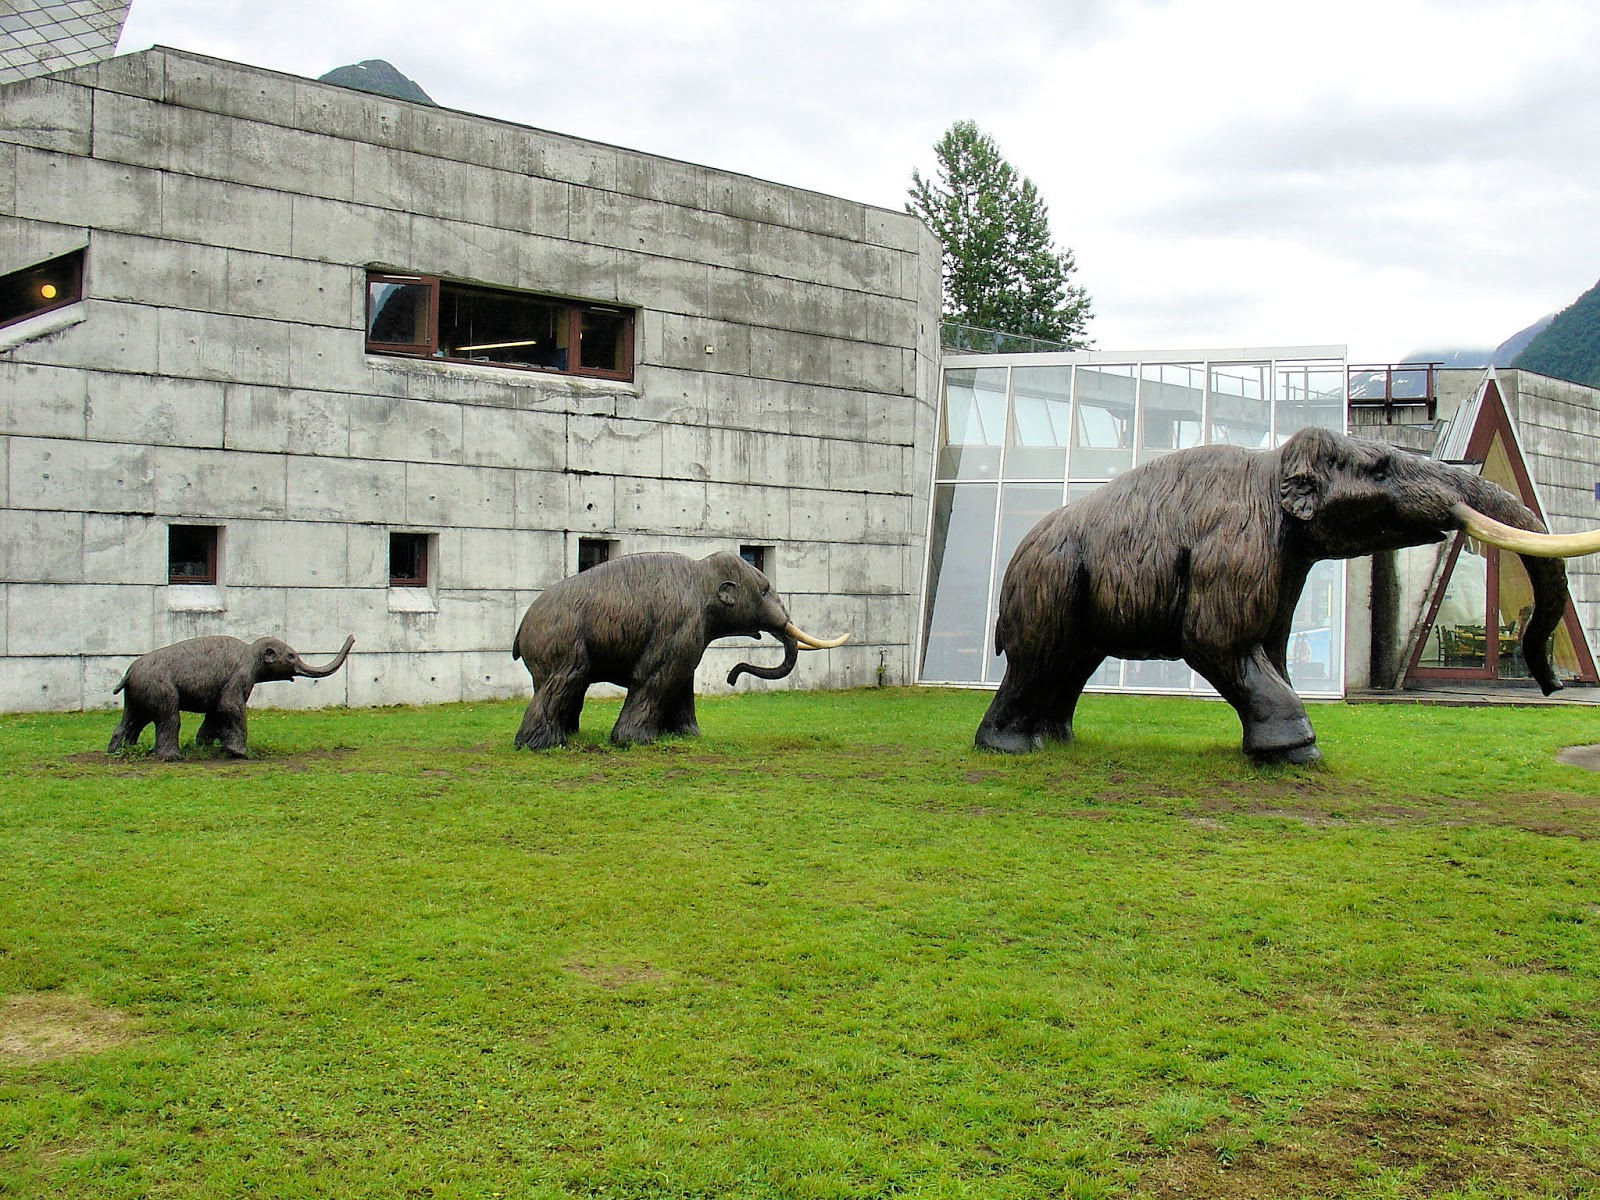 Being chased by mammoths at the Norsk BreMuseum.